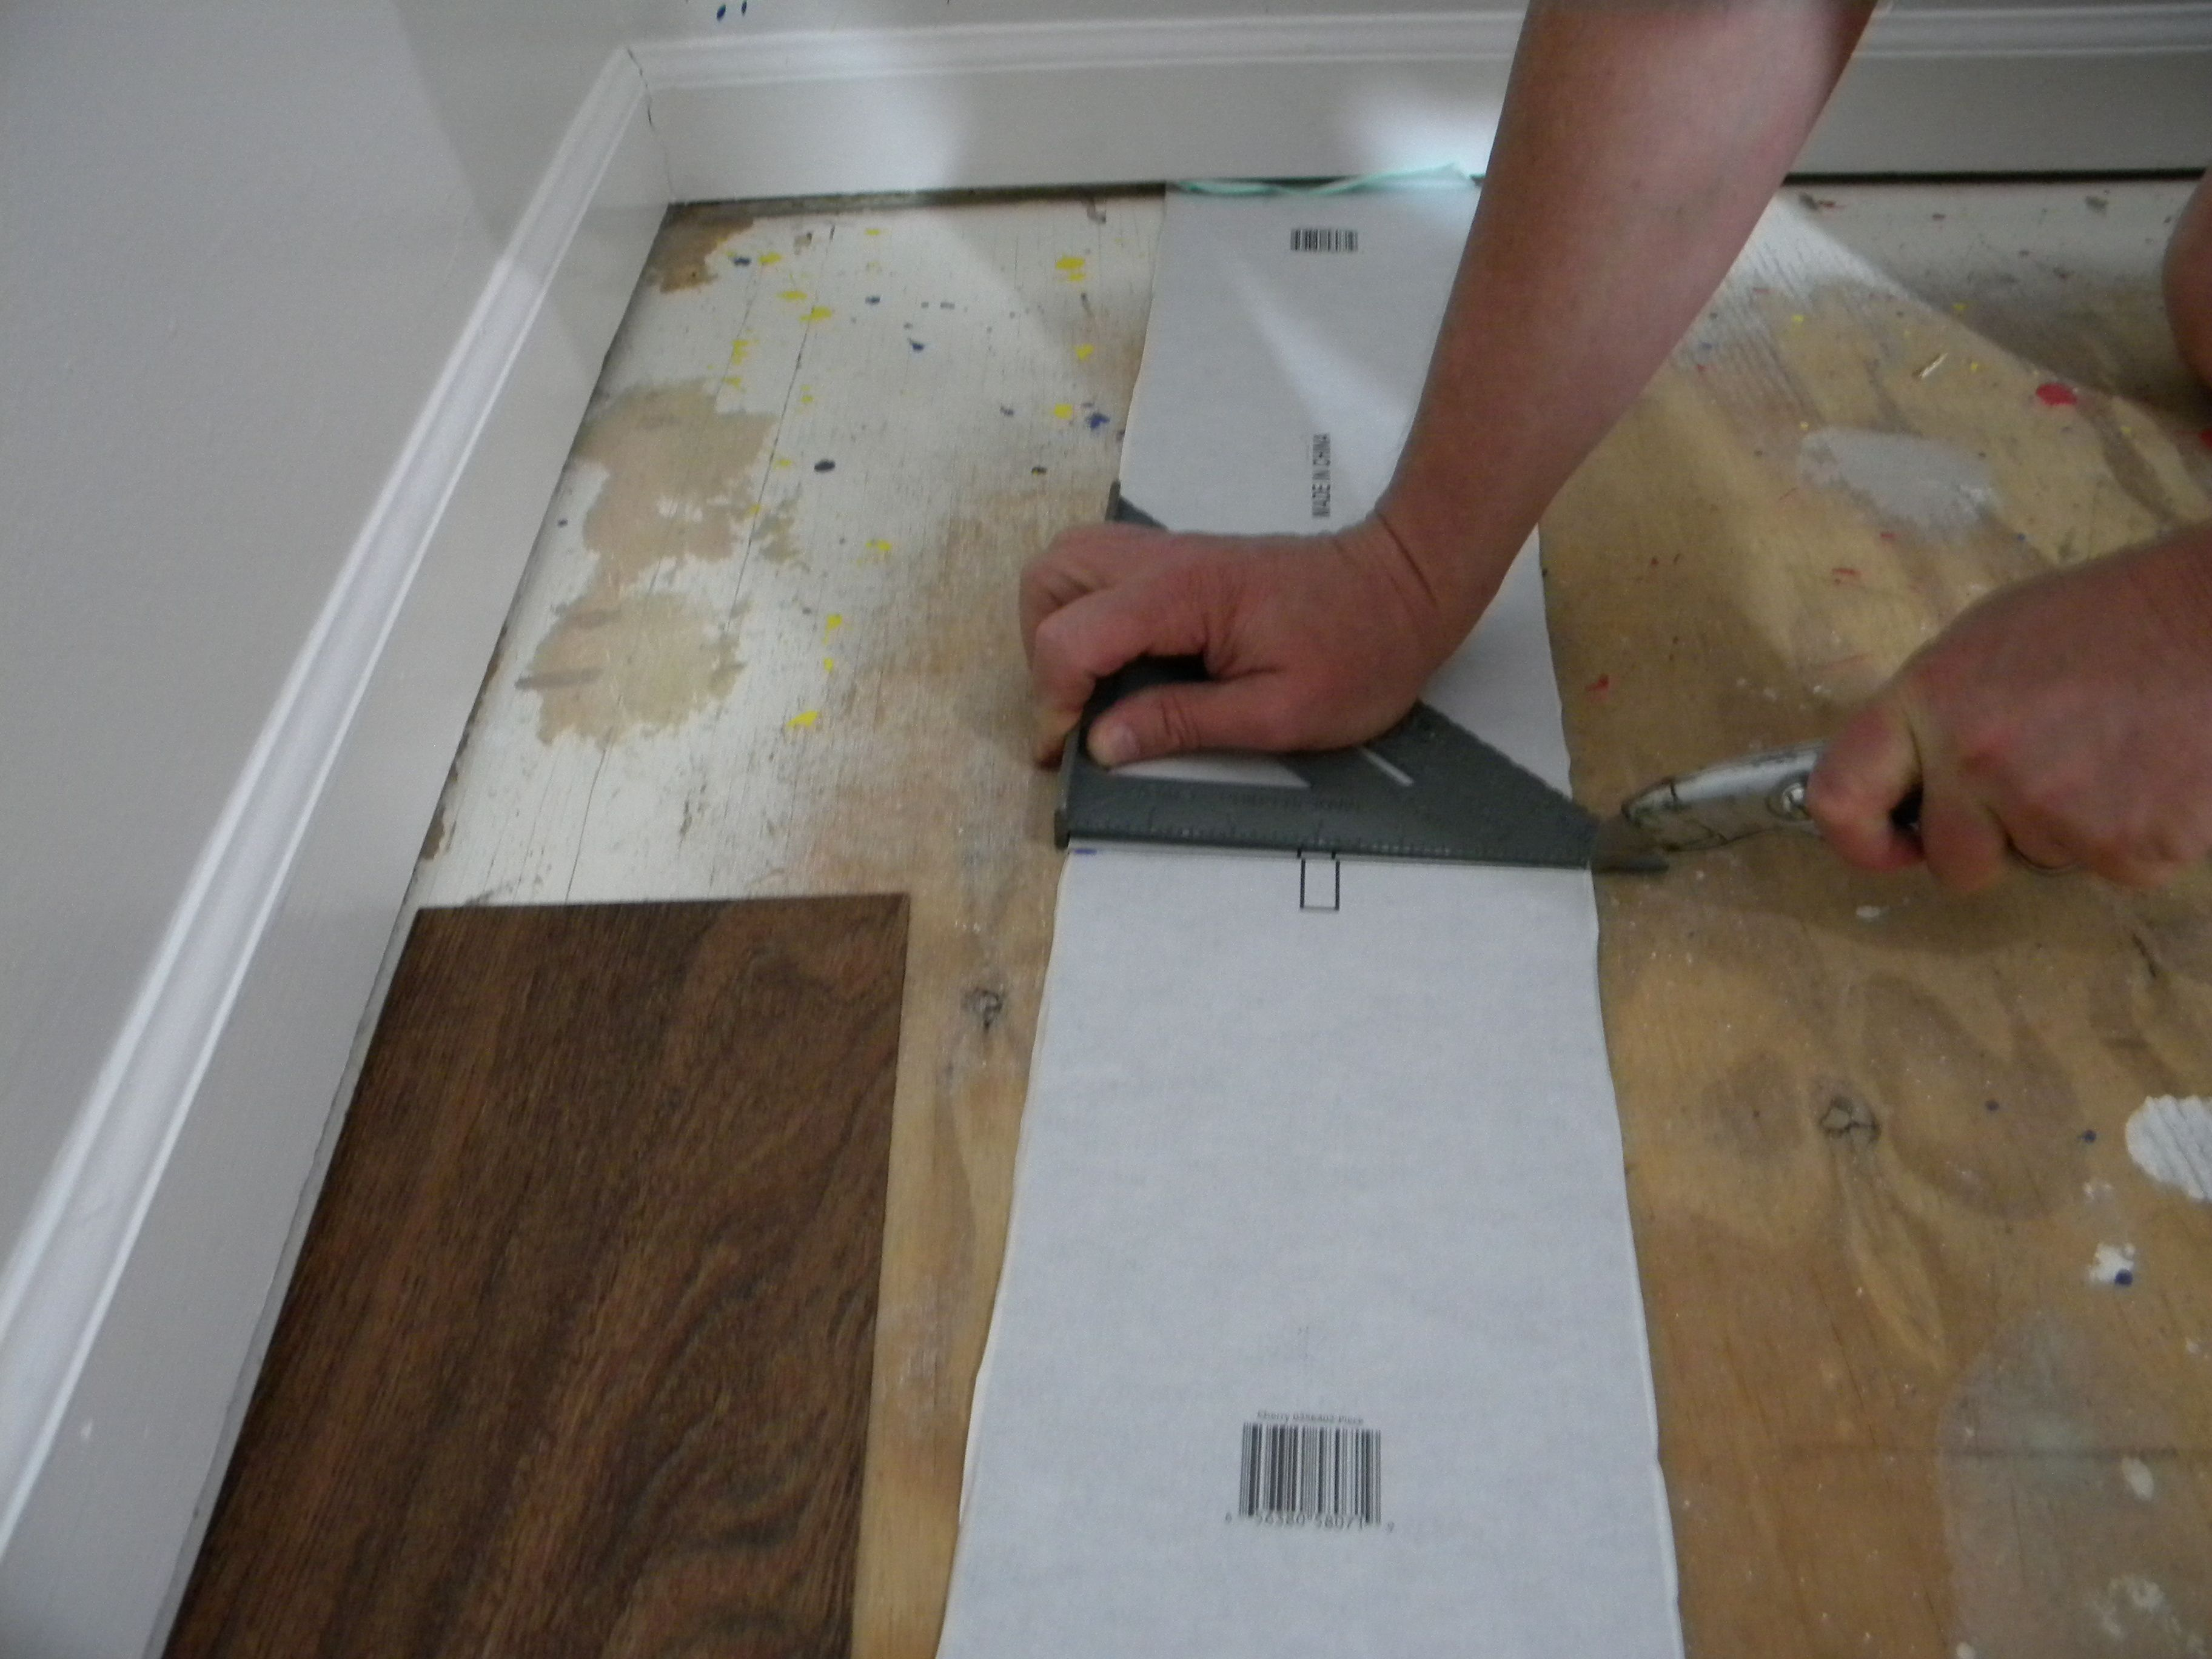 Install plank vinyl flooring the easy uncomplicated way utility install plank vinyl flooring the easy uncomplicated way utility knife plank and easy dailygadgetfo Image collections